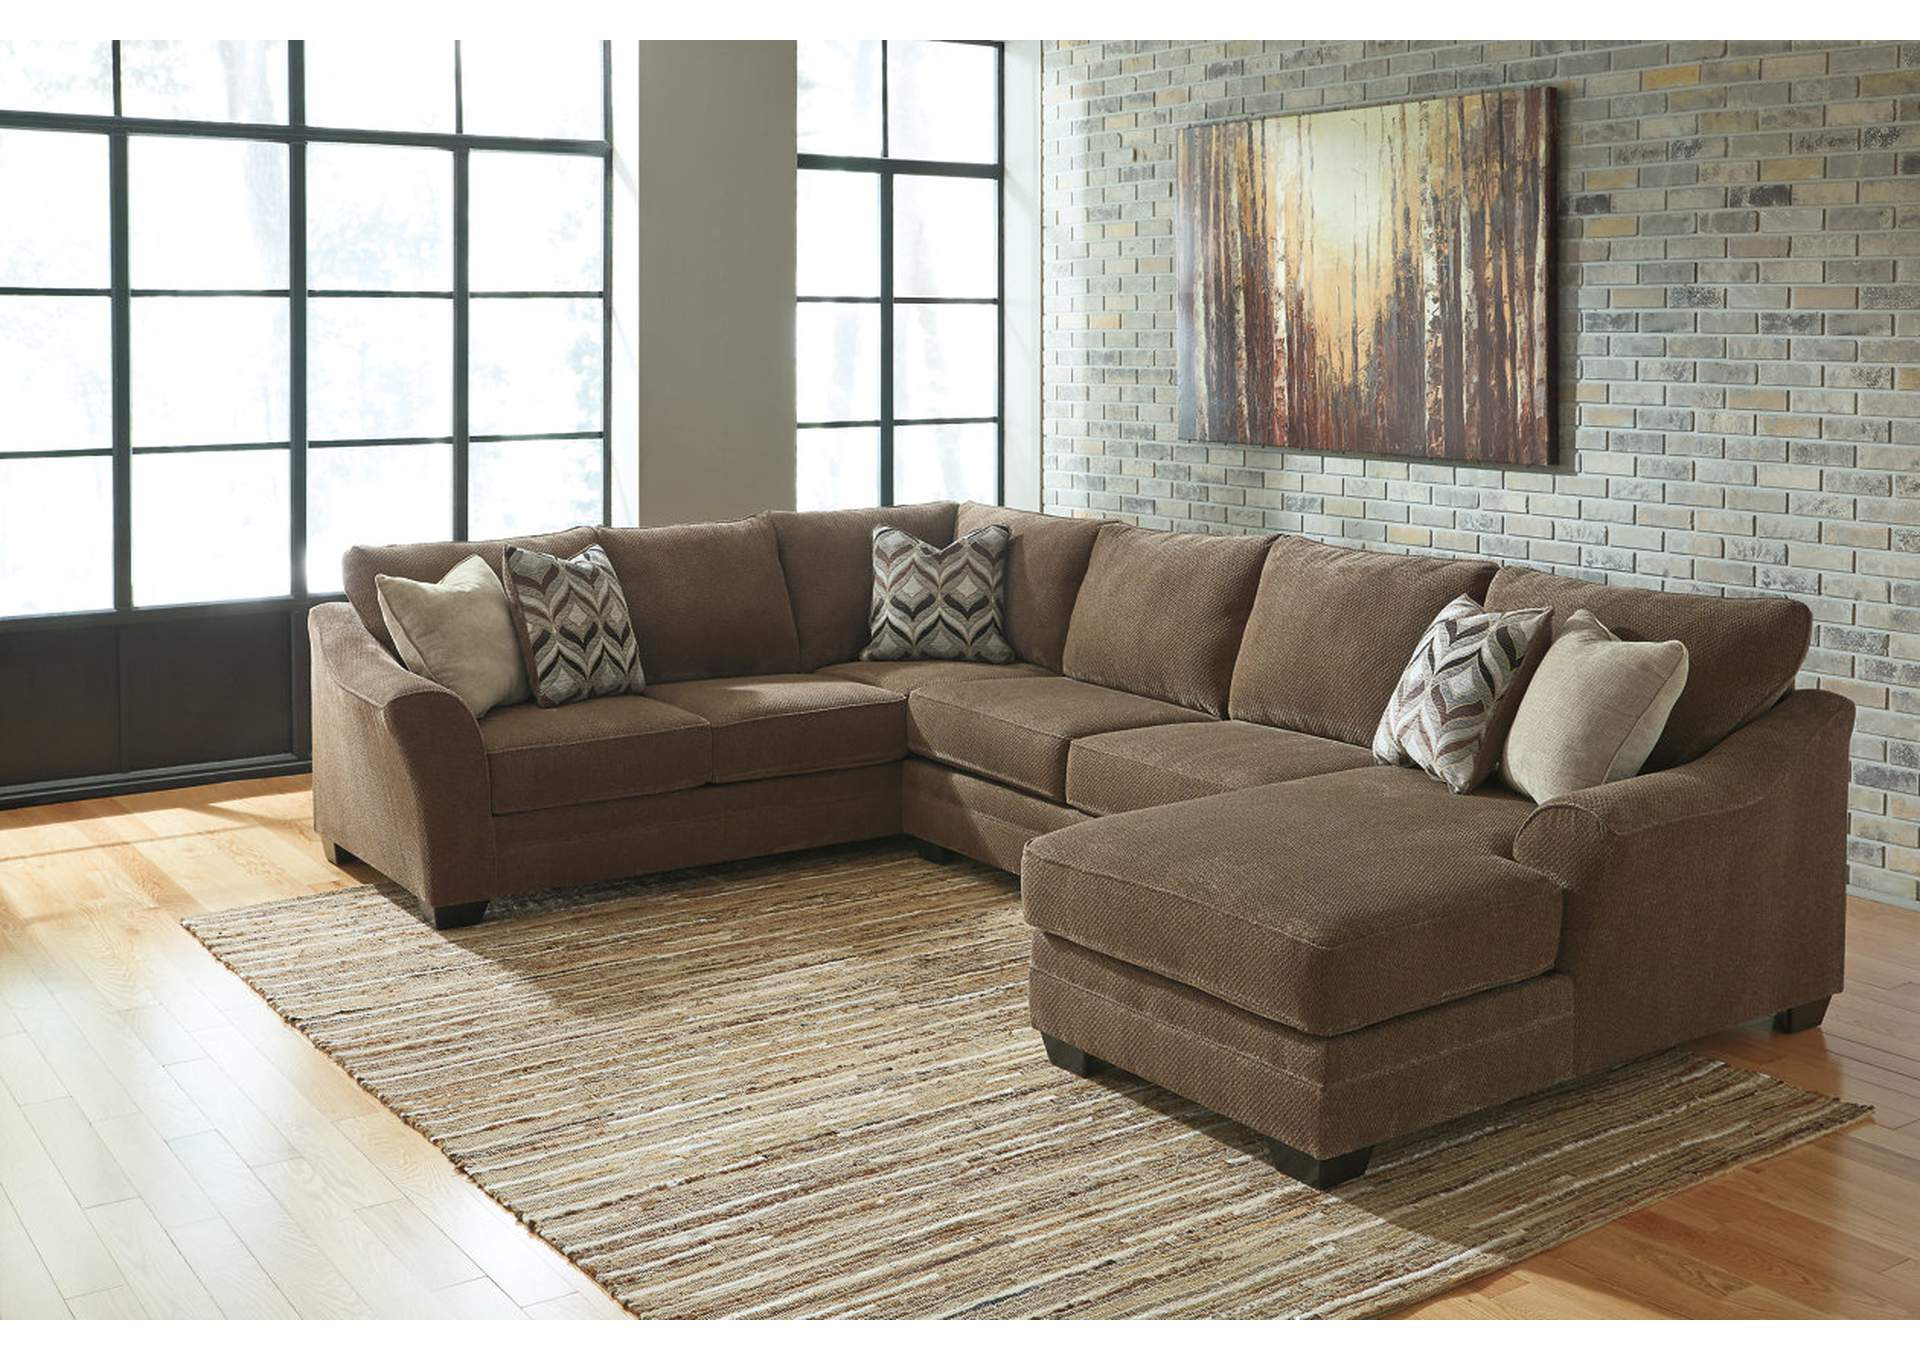 Major Discount Furniture Justyna Teak Sectional W Right Facing Corner Chaise